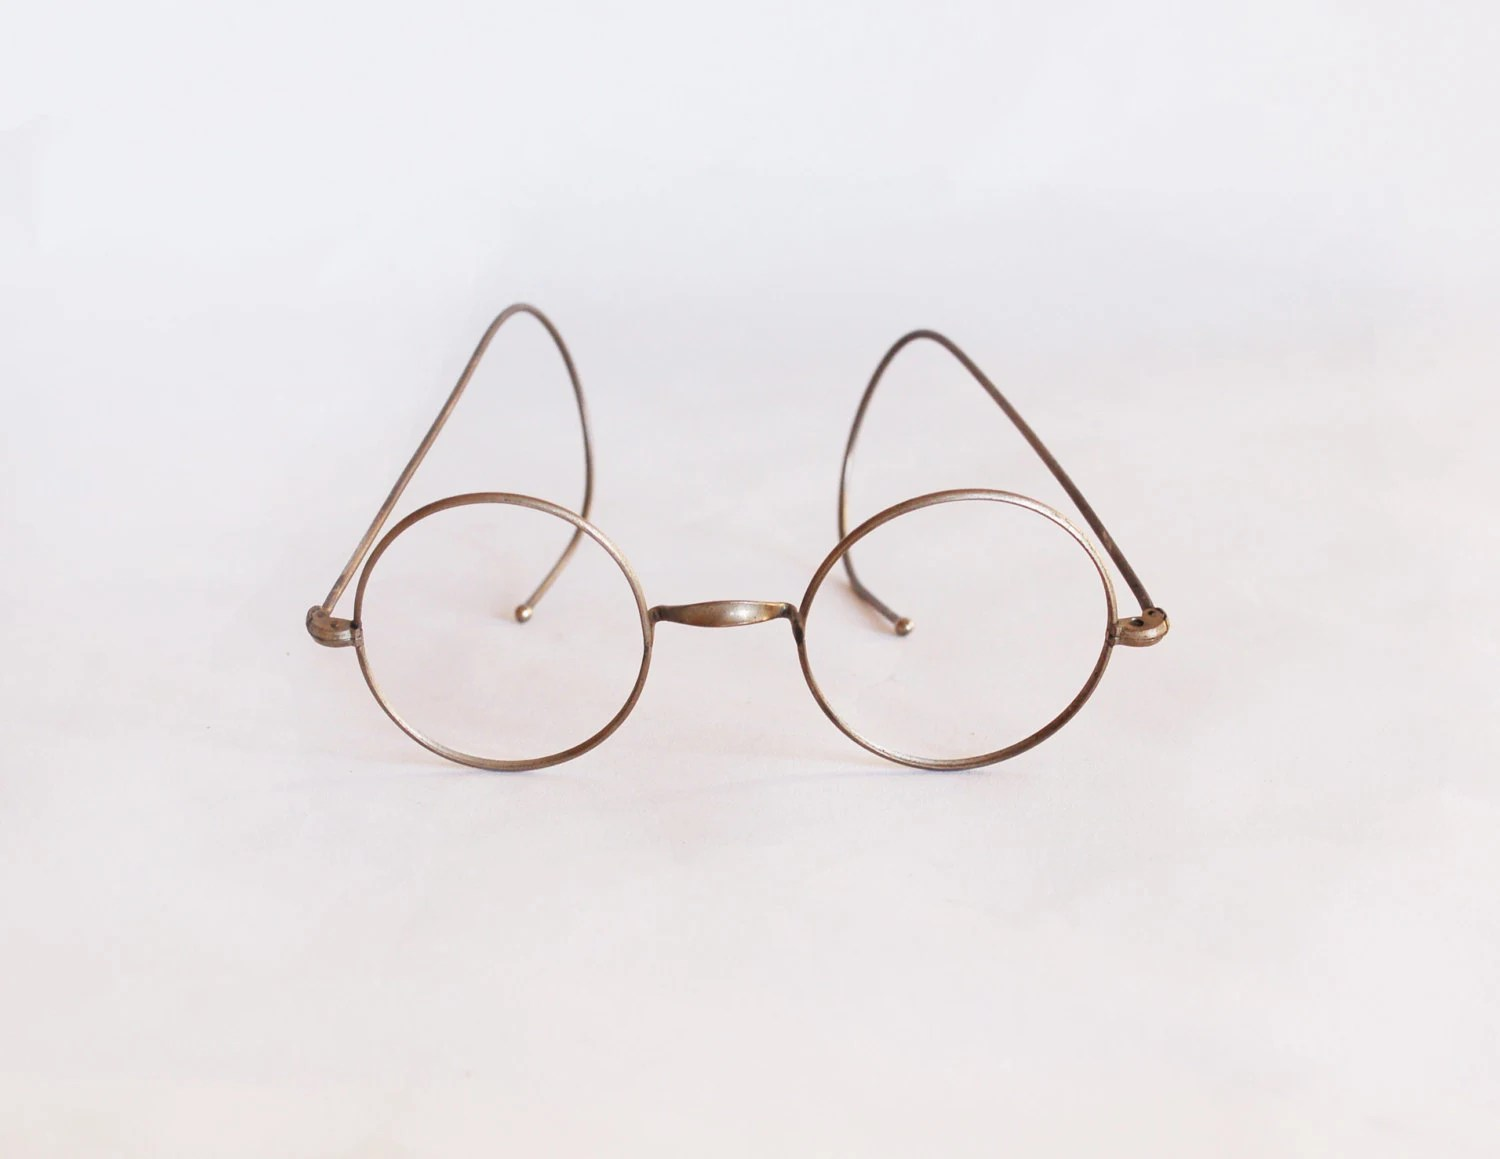 Antique Round Eyeglasses Early S Deadstock Silver